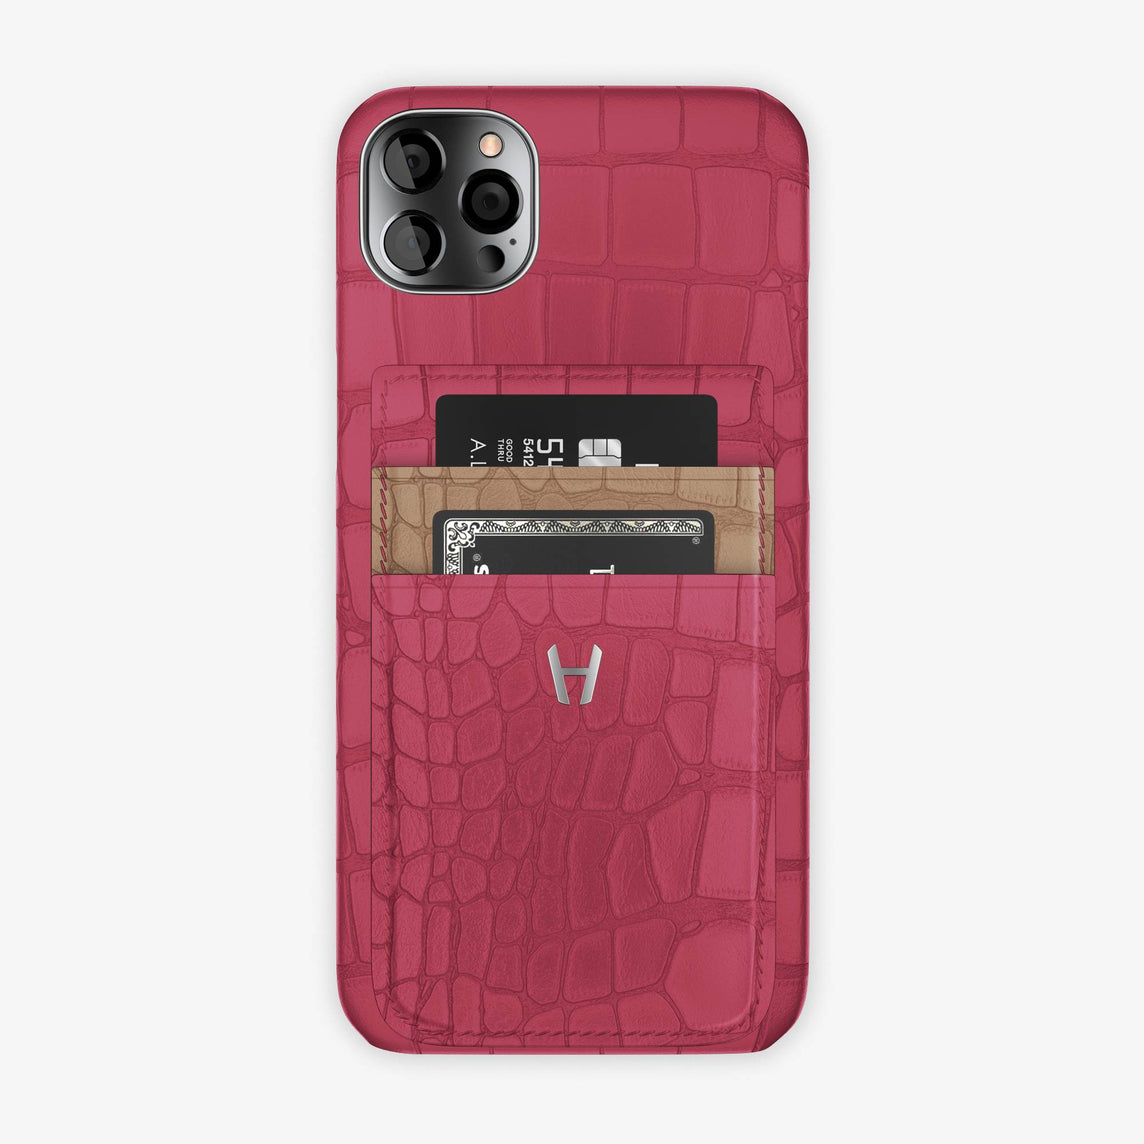 Alligator Pocket Case iPhone 12 Pro Max | Pink Girly/Latte - Stainless Steel